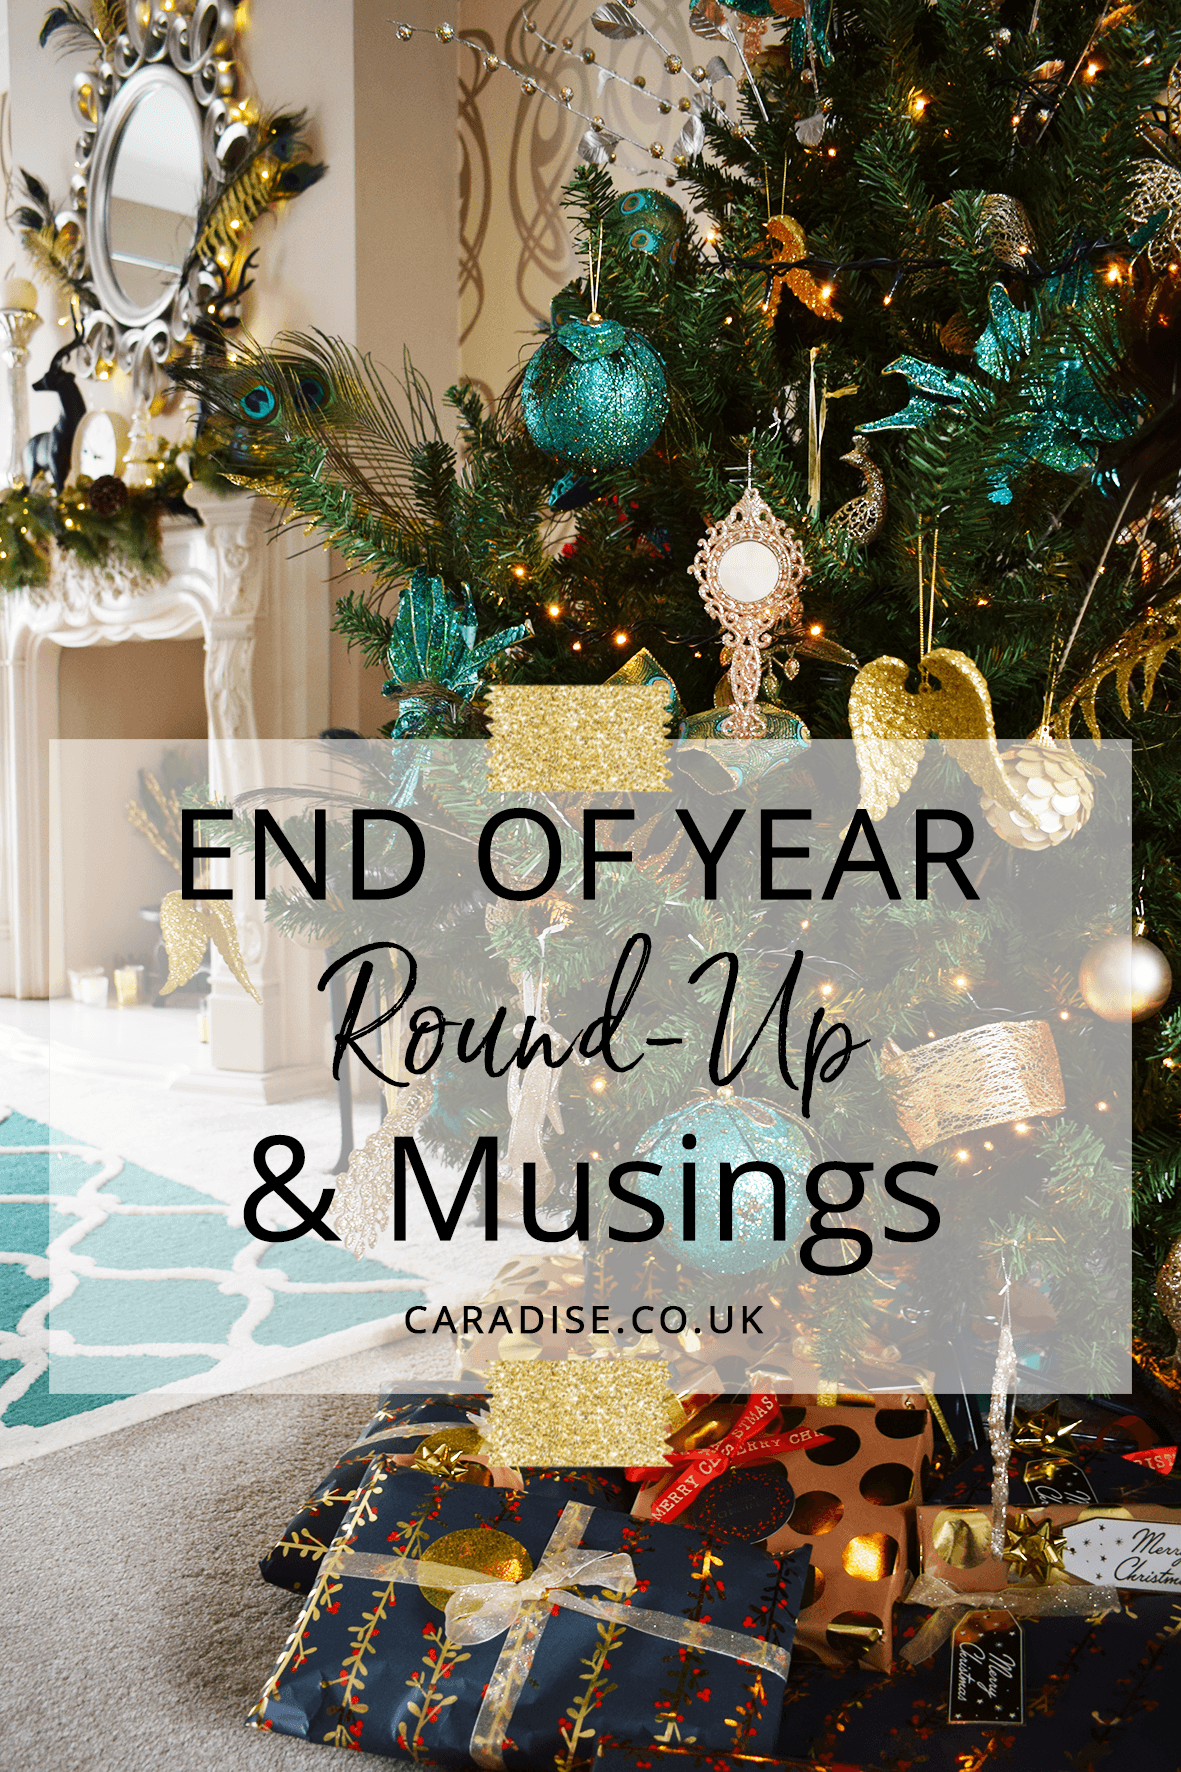 End of year round-up and musings